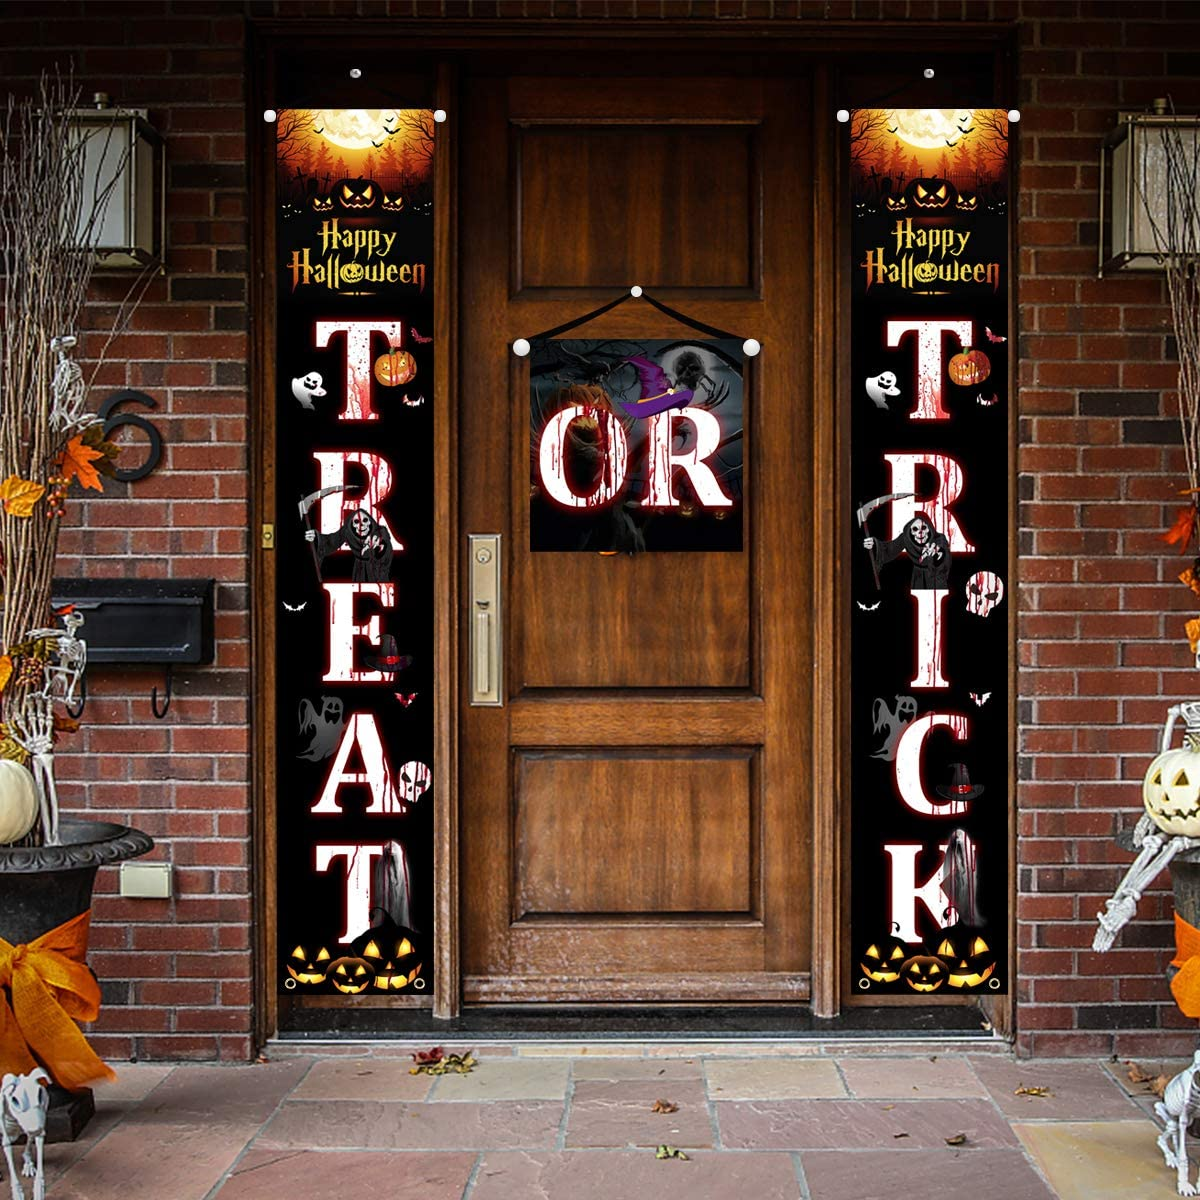 Trick Or Treat Halloween Decorations YSBER Hanging Porch Sign Banner for Front Door or Indoor Home Decor | Halloween Welcome Signs (Black)